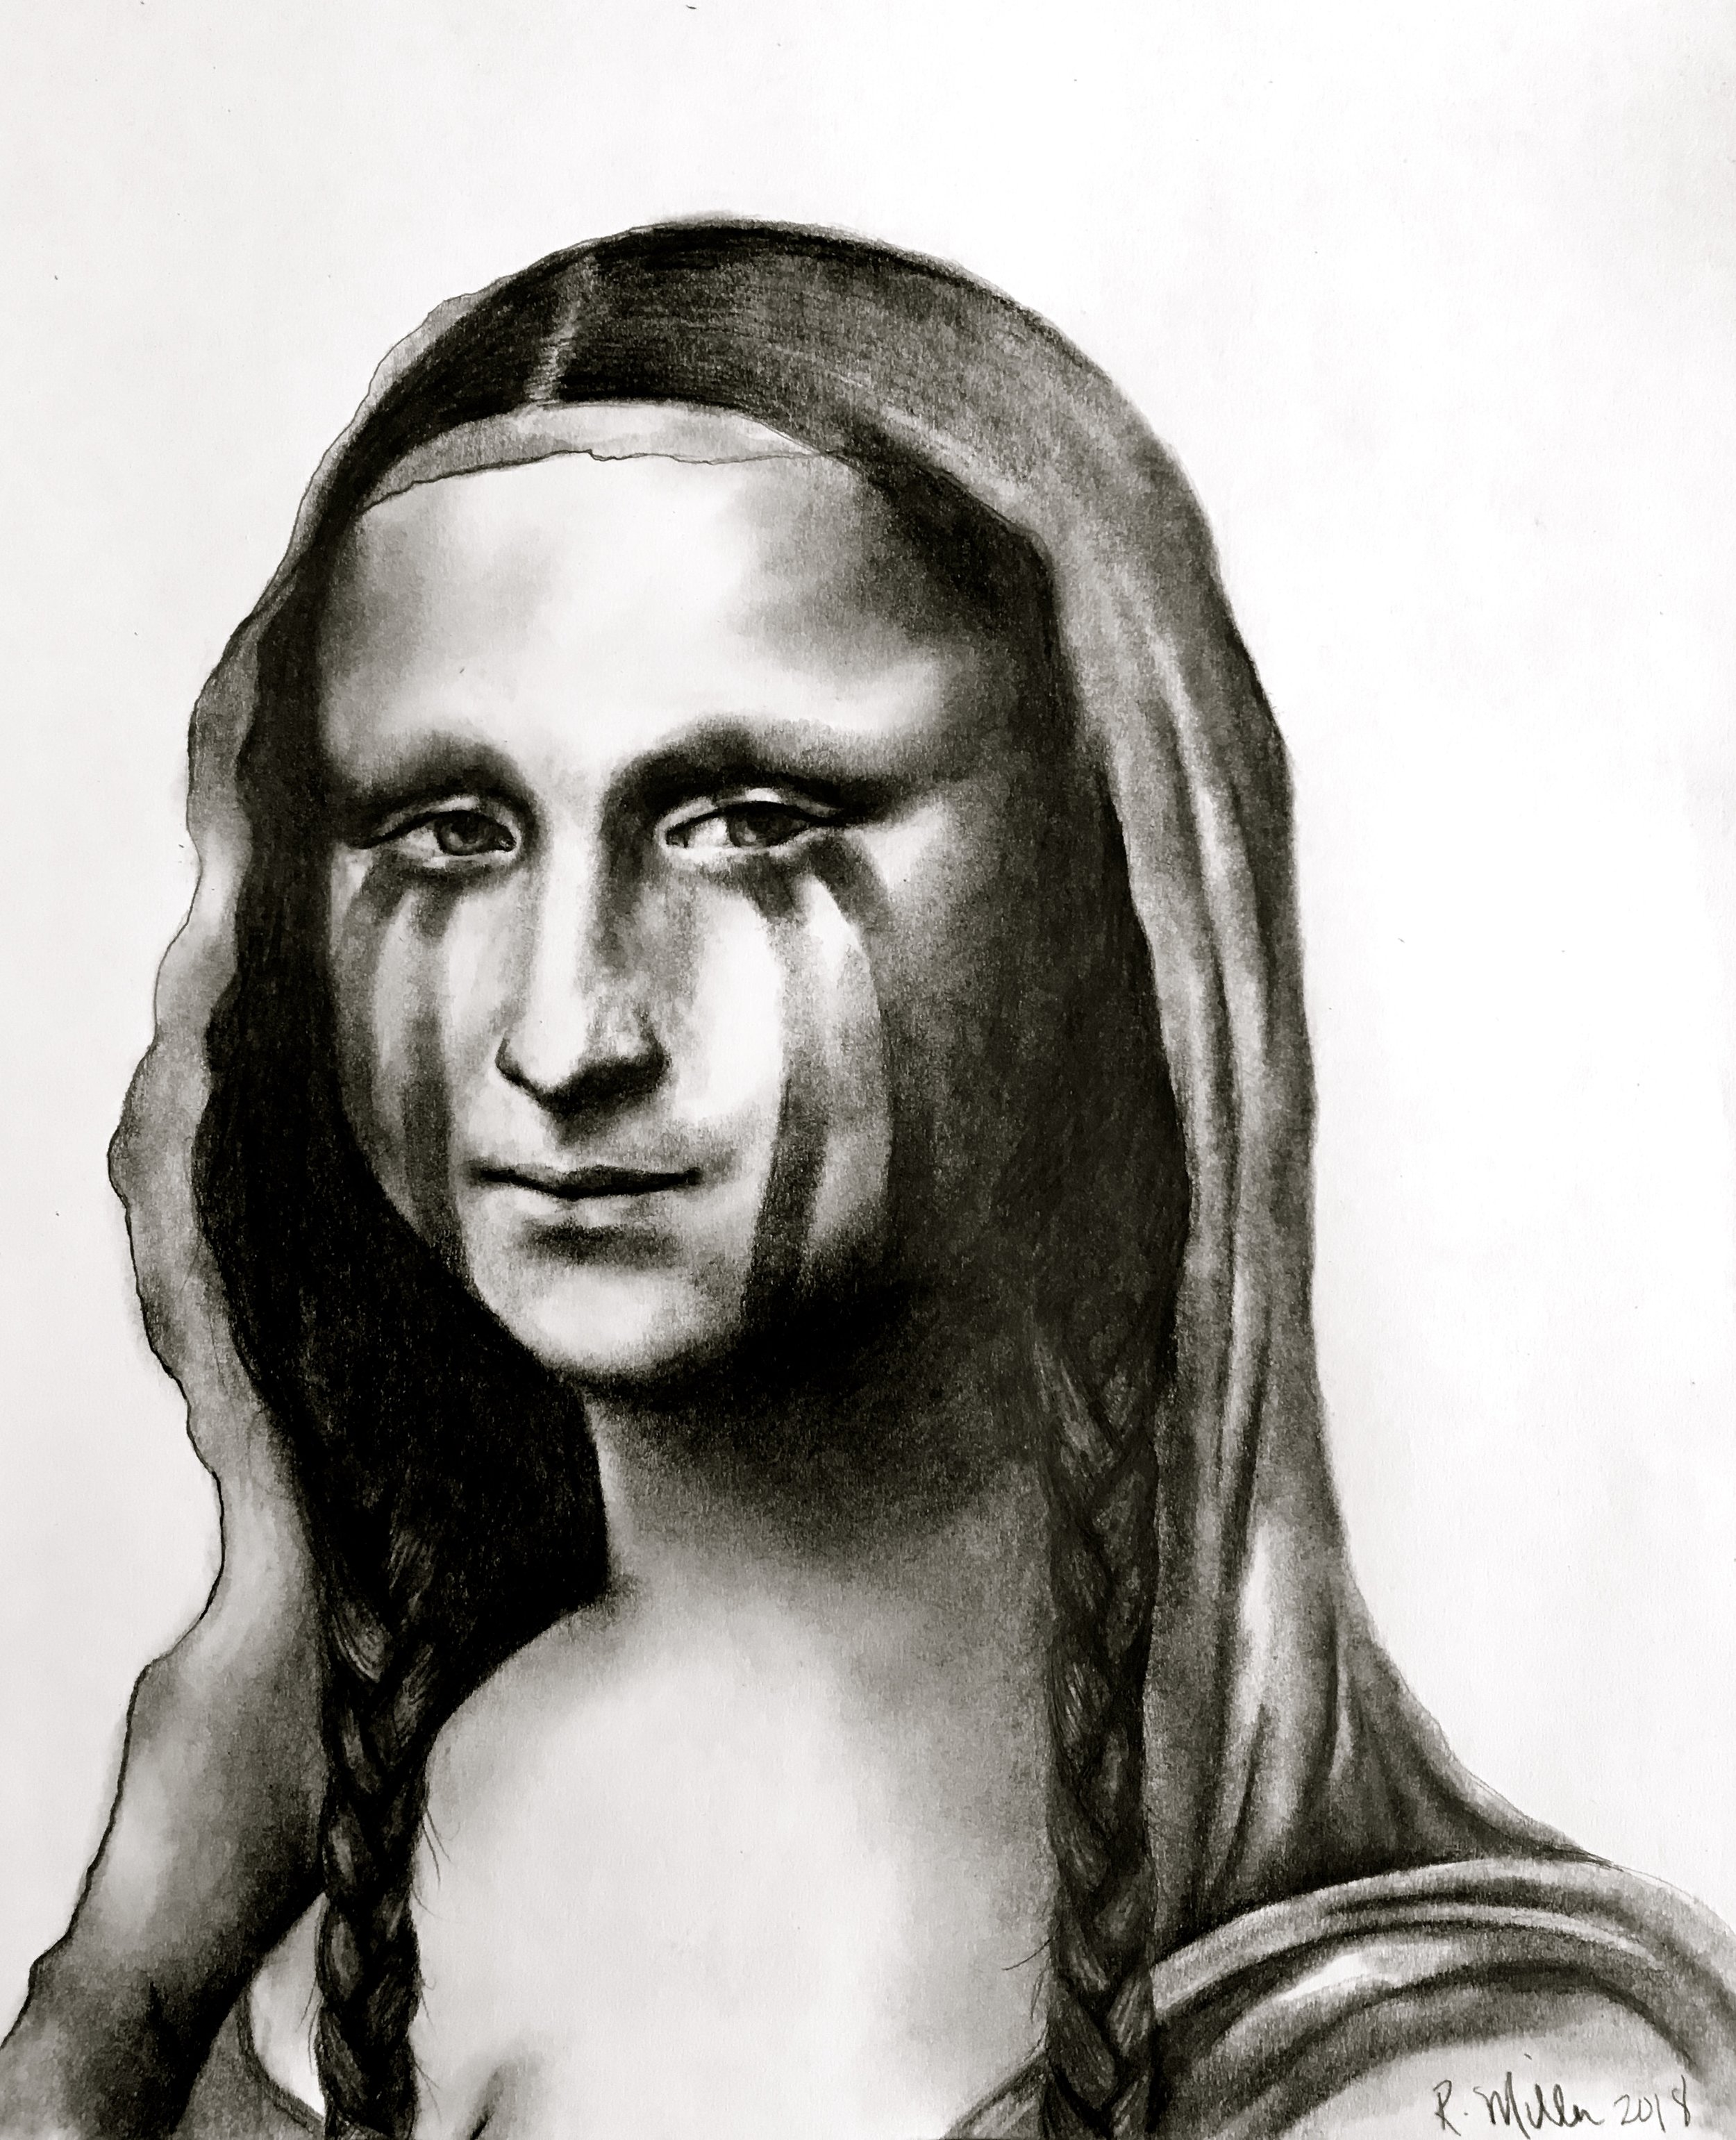 War Paint Mona Lisa, 2018   #2 pencil on paper